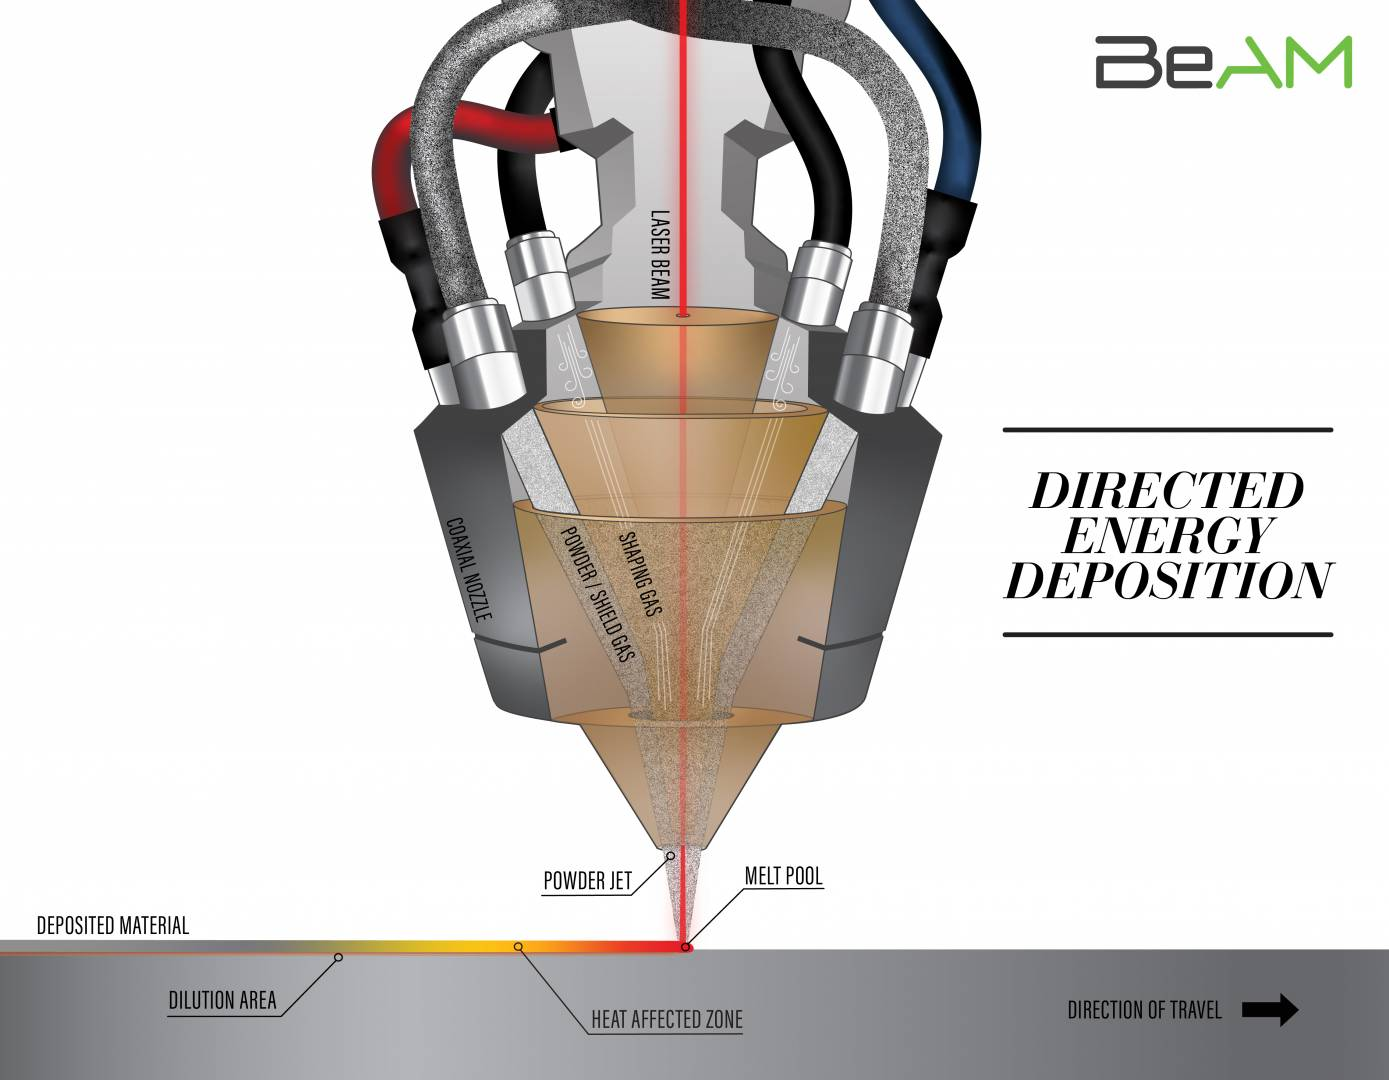 Directed Energy Deposition Coaxial Nozzle by BeAM